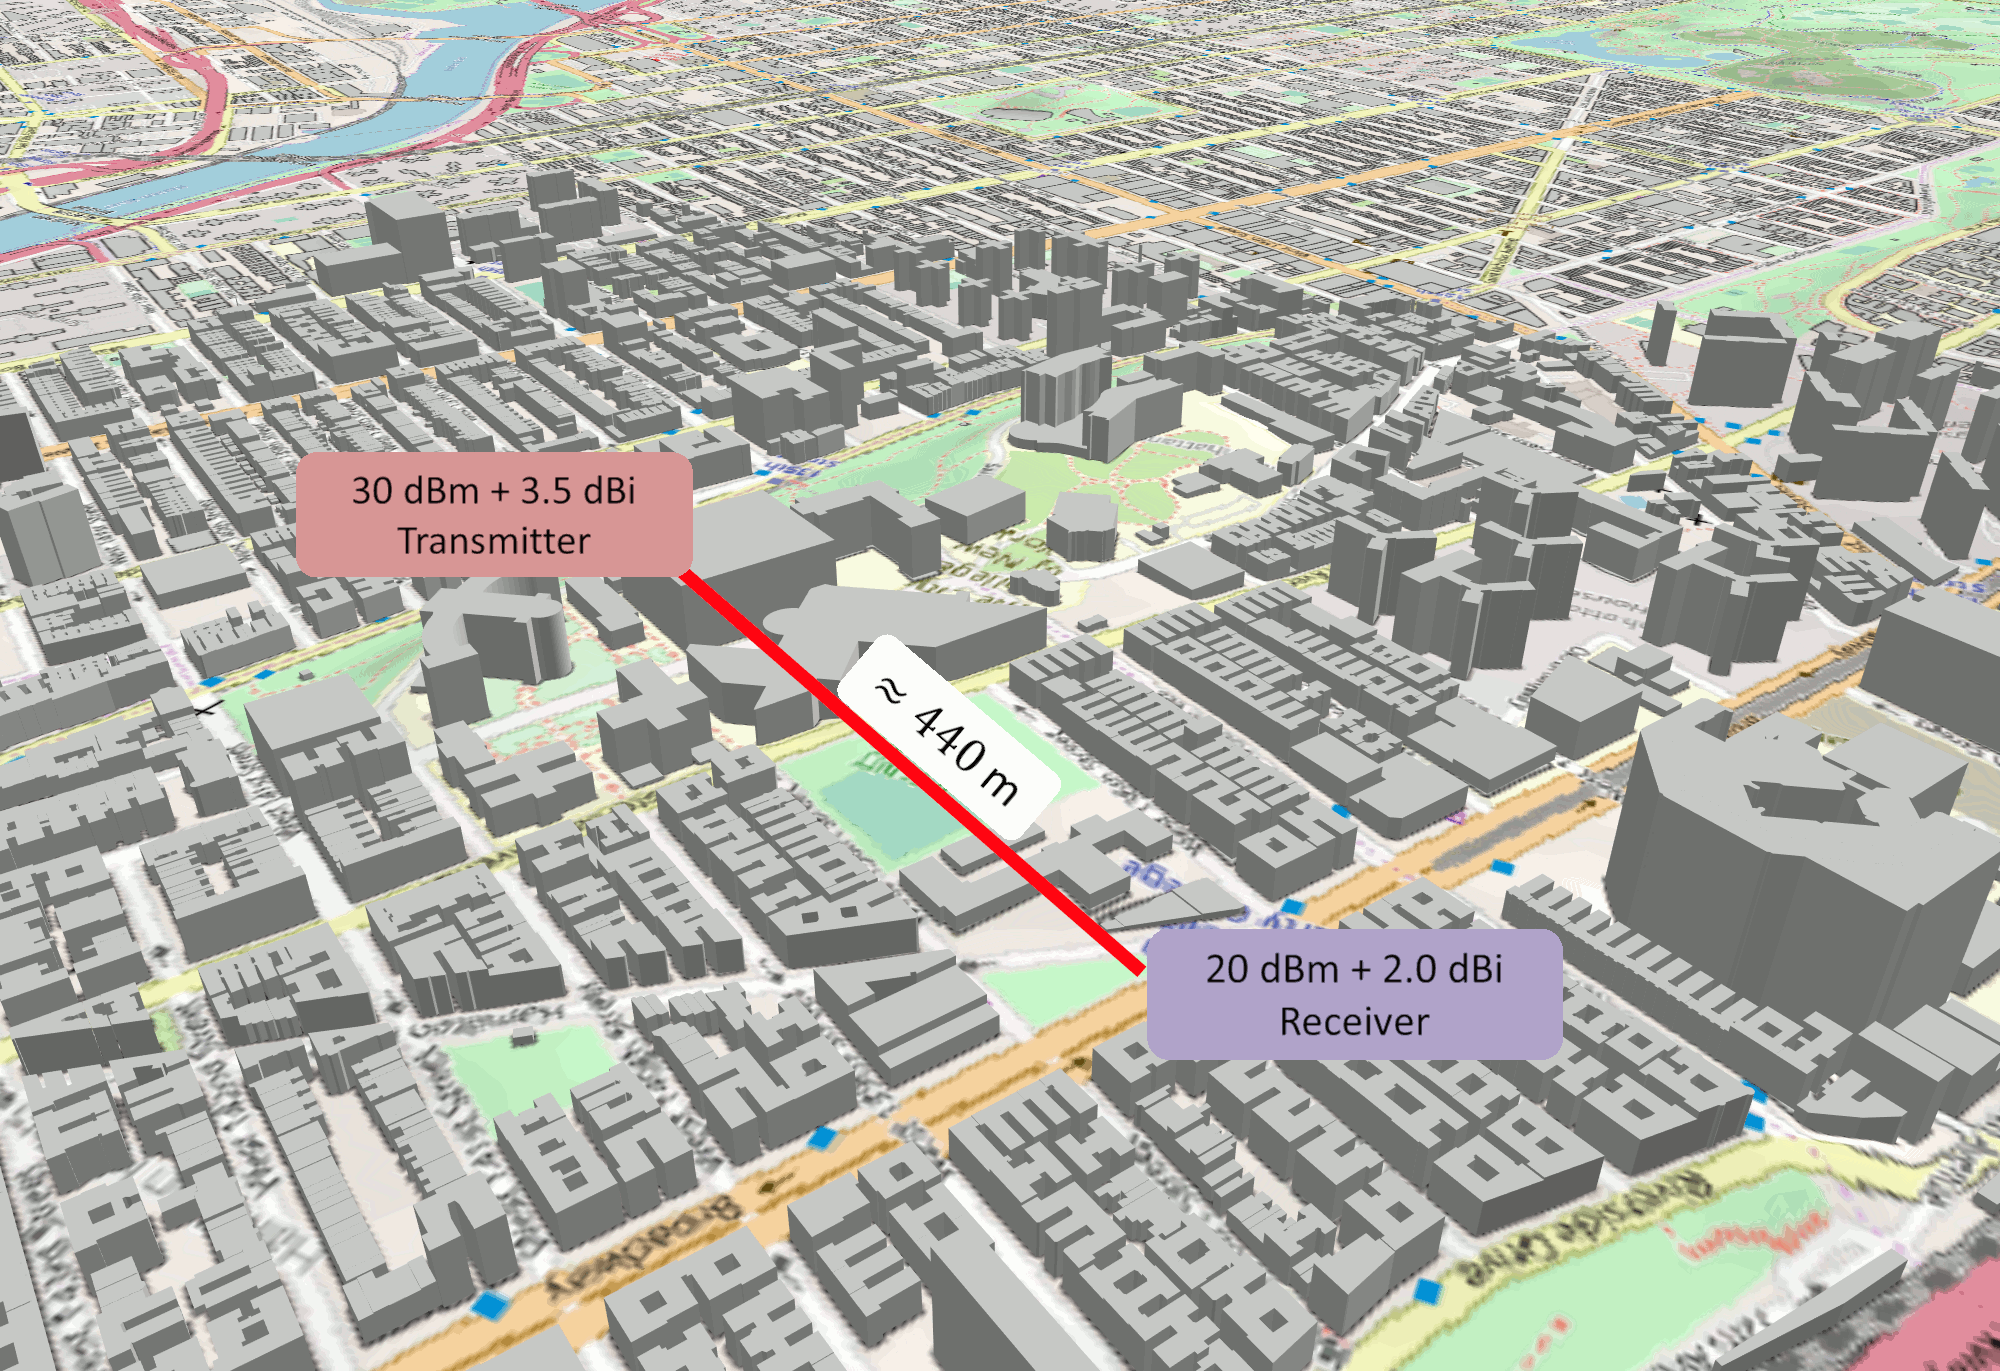 CCNY_map_of_lora_range_annotated.png